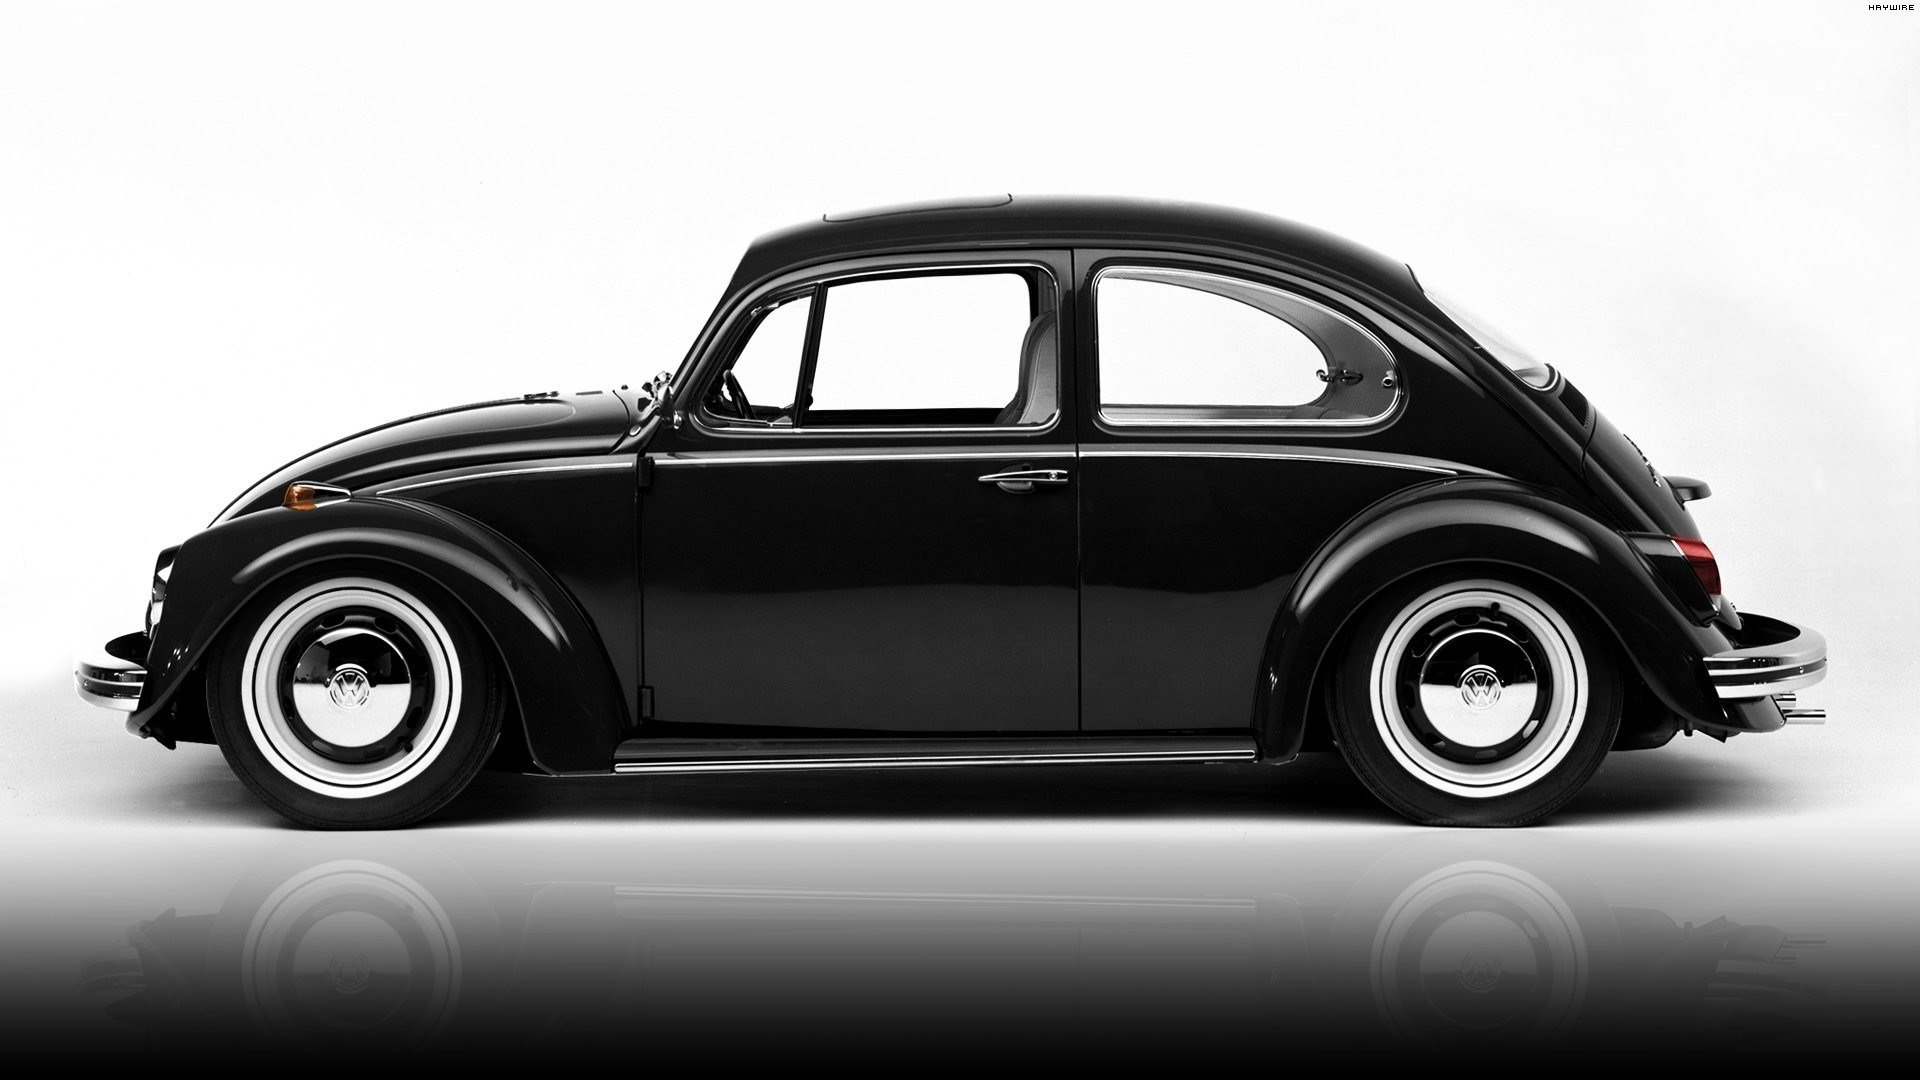 Latest Vw Beetle Wallpaper Hd 72 Images Free Download